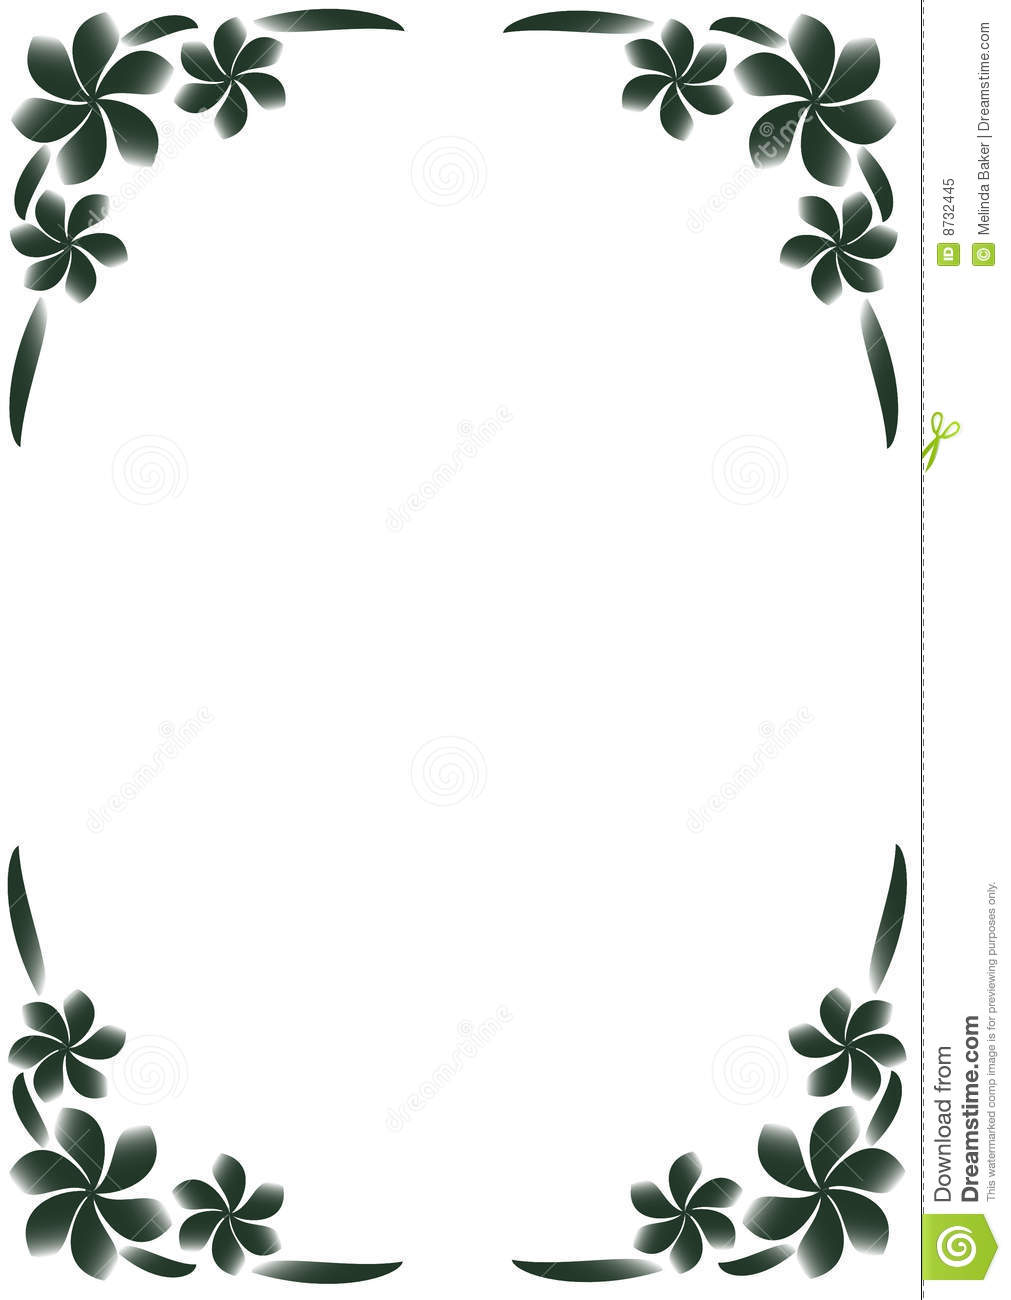 18 Black And White Flower Border Designs Images - Black ...